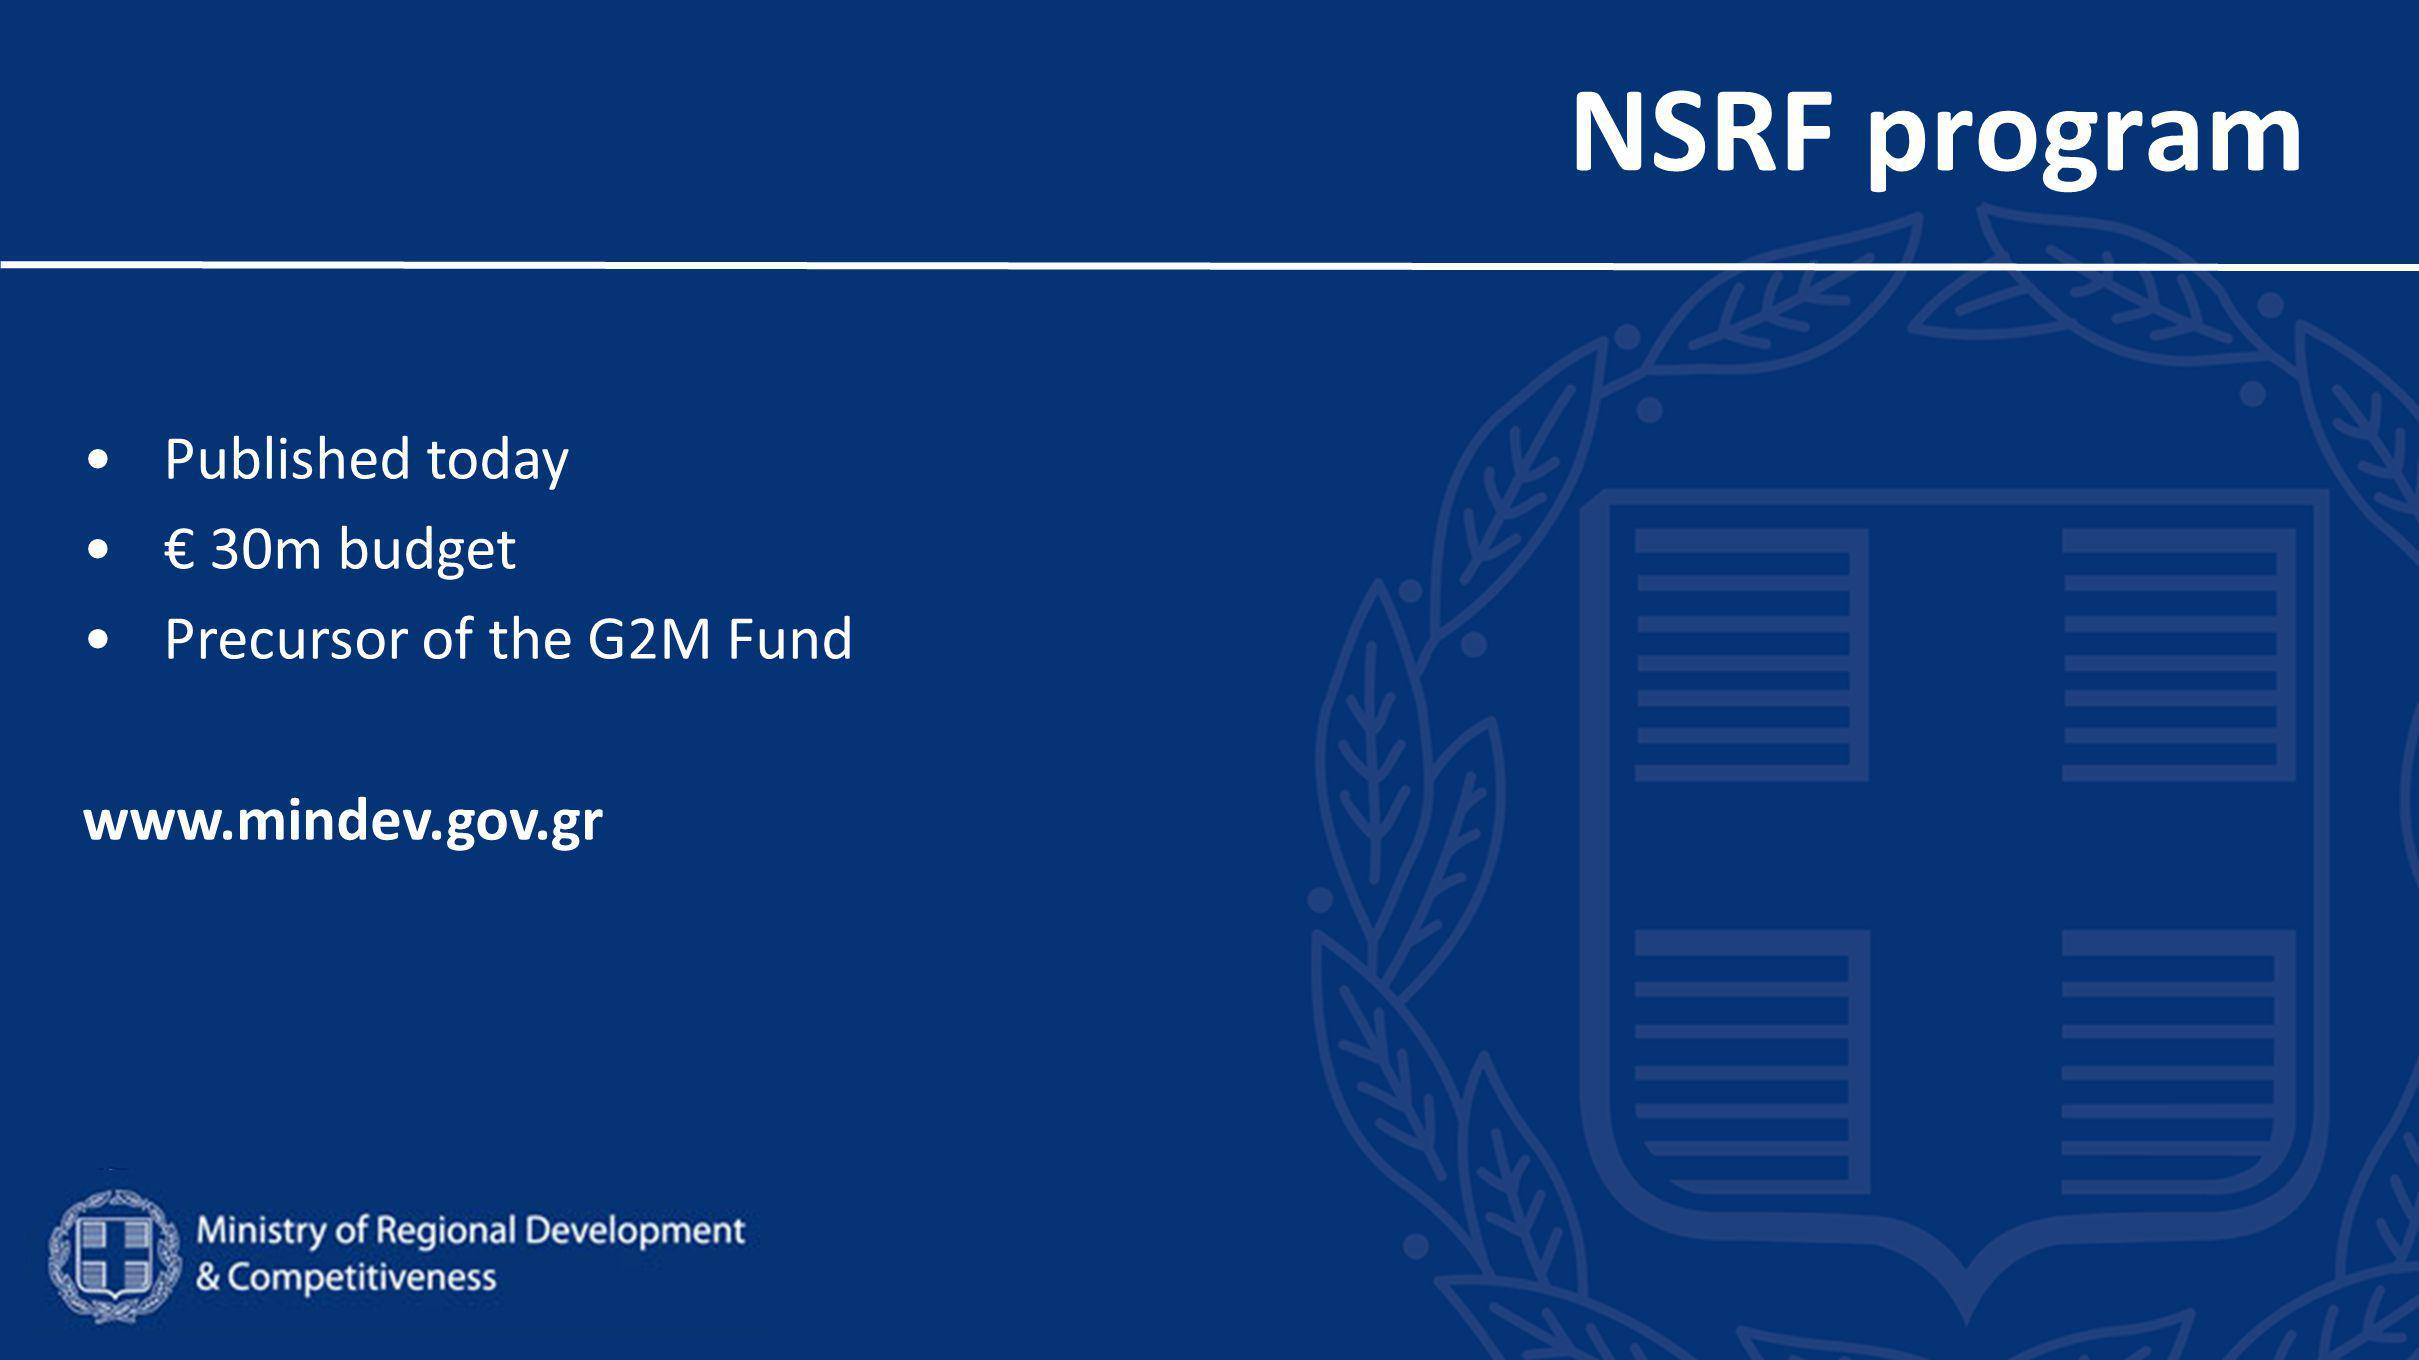 NSRF program Published today € 30m budget Precursor of the G2M Fund www.mindev.gov.gr